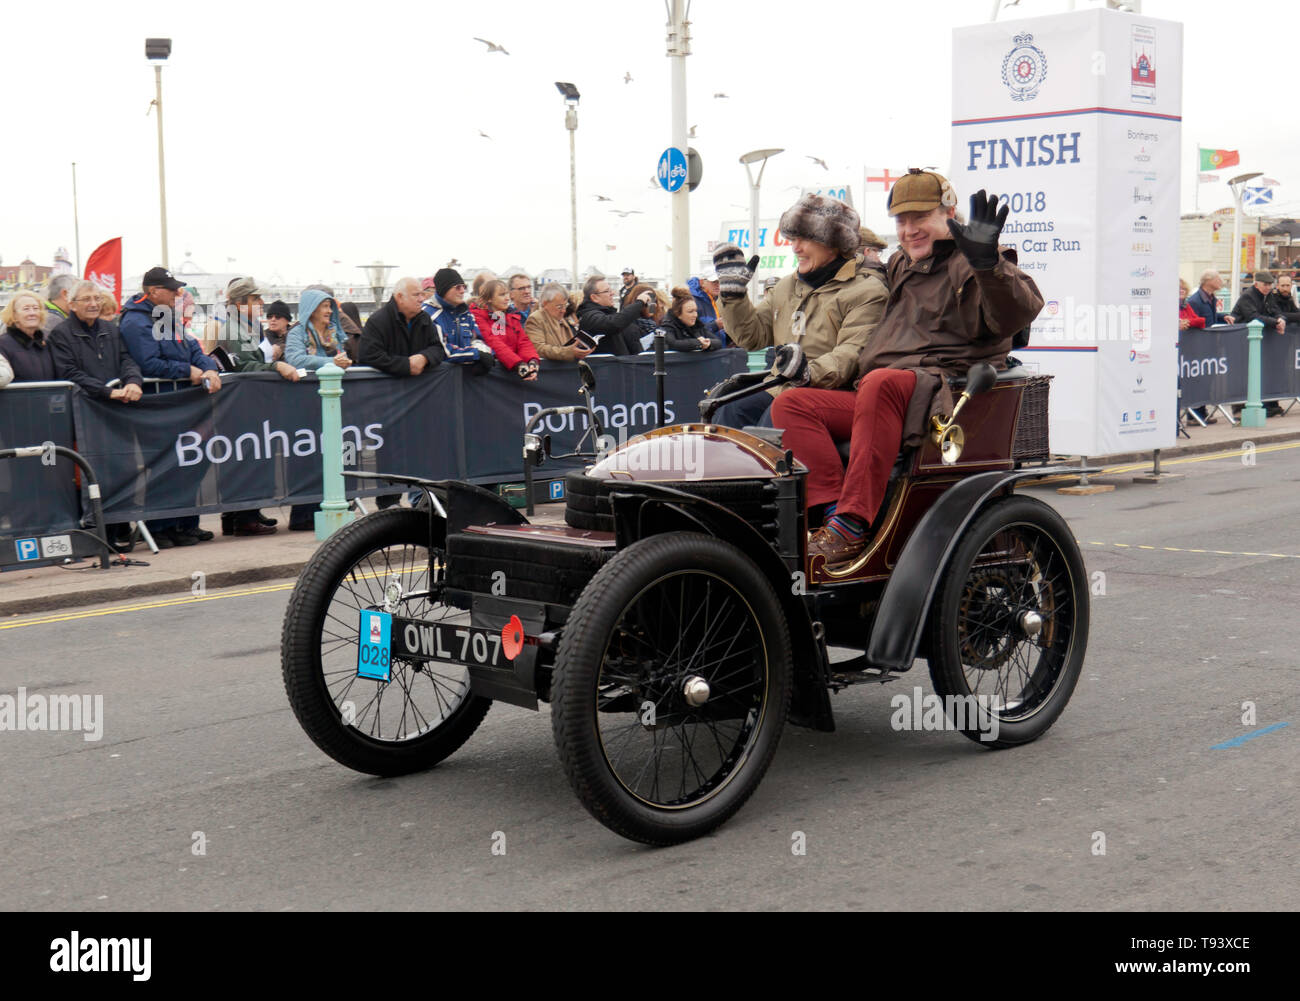 A 1899 Wolseley, entered by the British Motor Museum, crosses the finishing line, during the 2018 London to Brighton Veteran Car Run Stock Photo